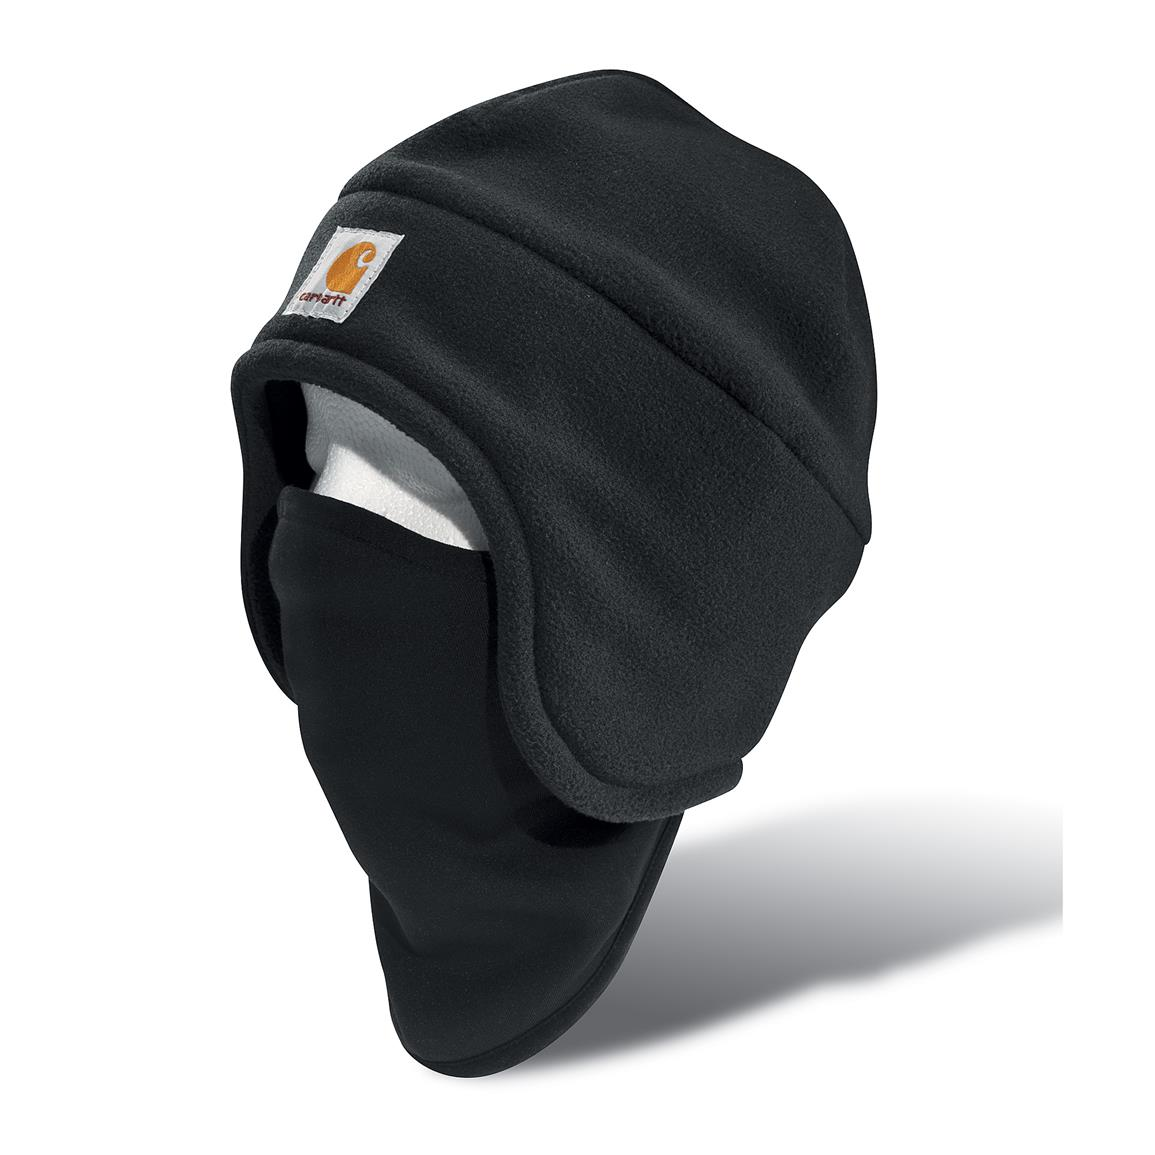 Carhartt Fleece 2-in-1 Hat with Face Mask, Black